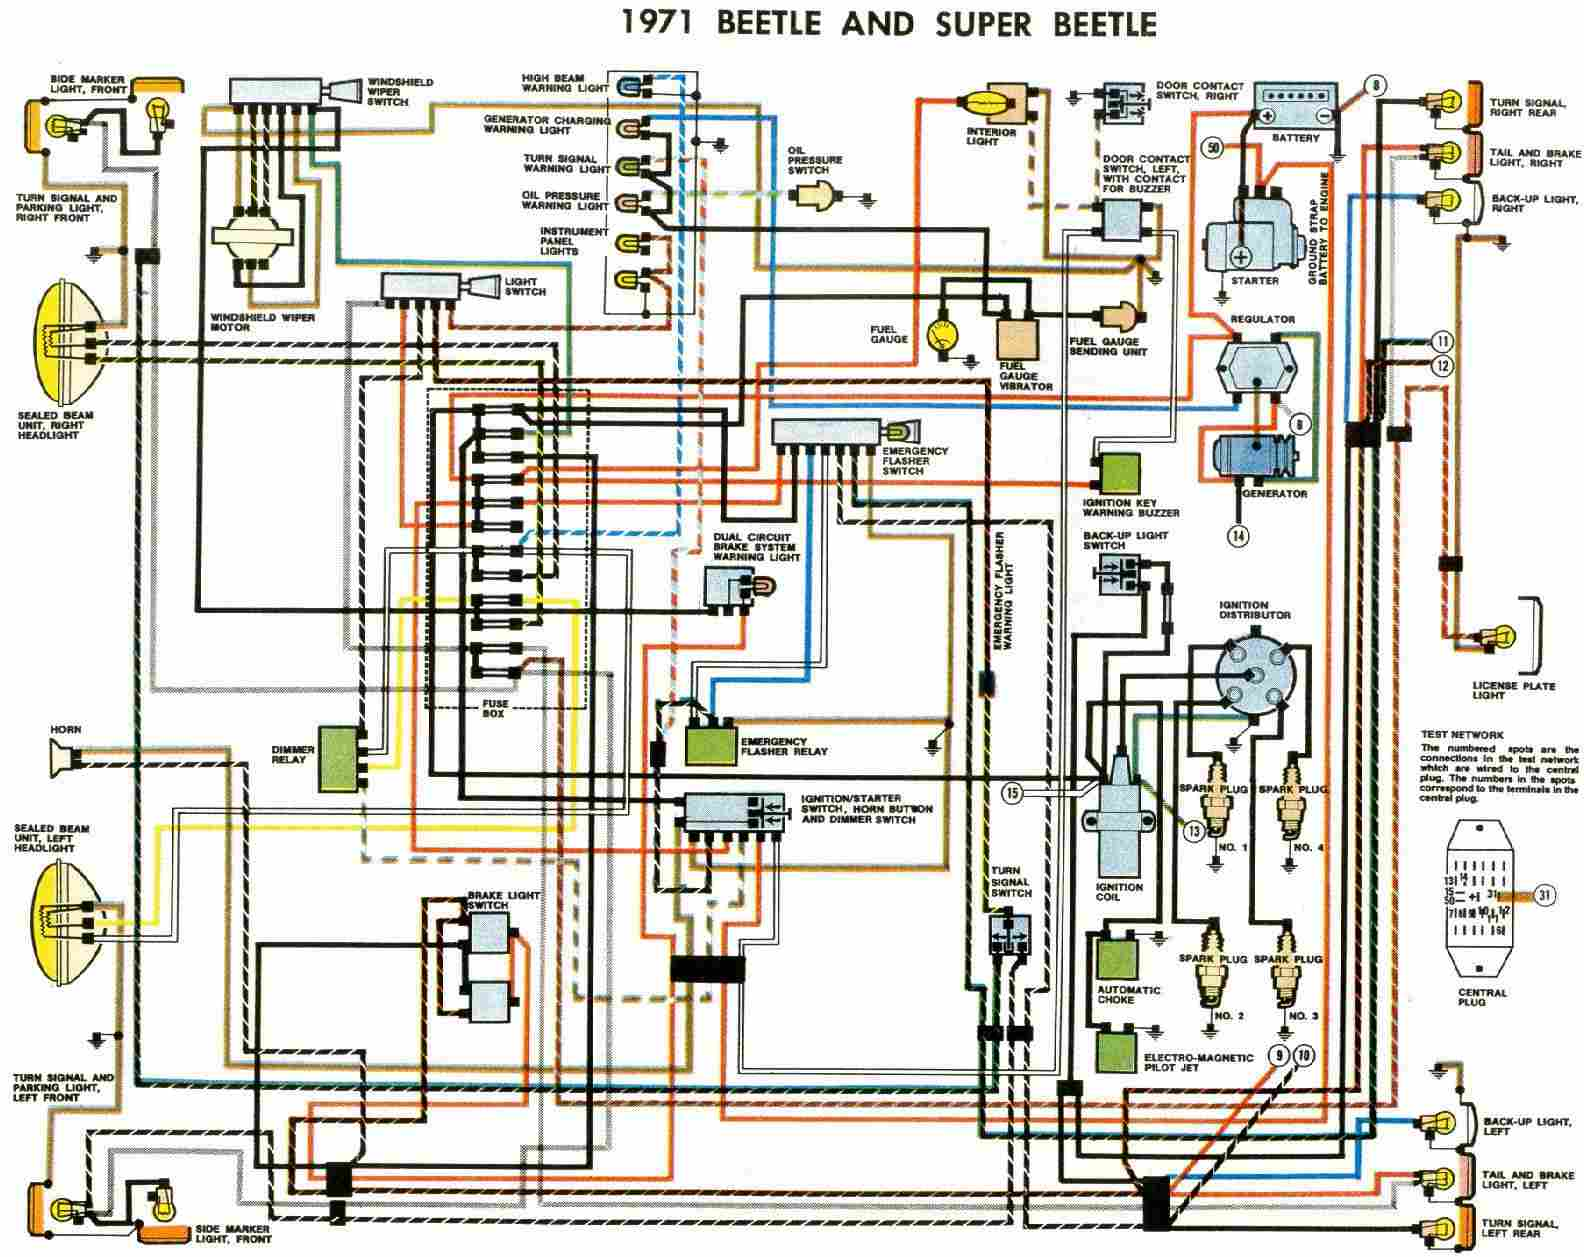 72 chevy impala wiring diagram with 1971 Vw Beetle And Super Beetle on 2012 Malibu Wiring Diagram likewise Camaro electrical as well Chevy Steering Column Diagram likewise The Chevrolet 327 furthermore Identification Plate Location For 1963 Gmc Truck.